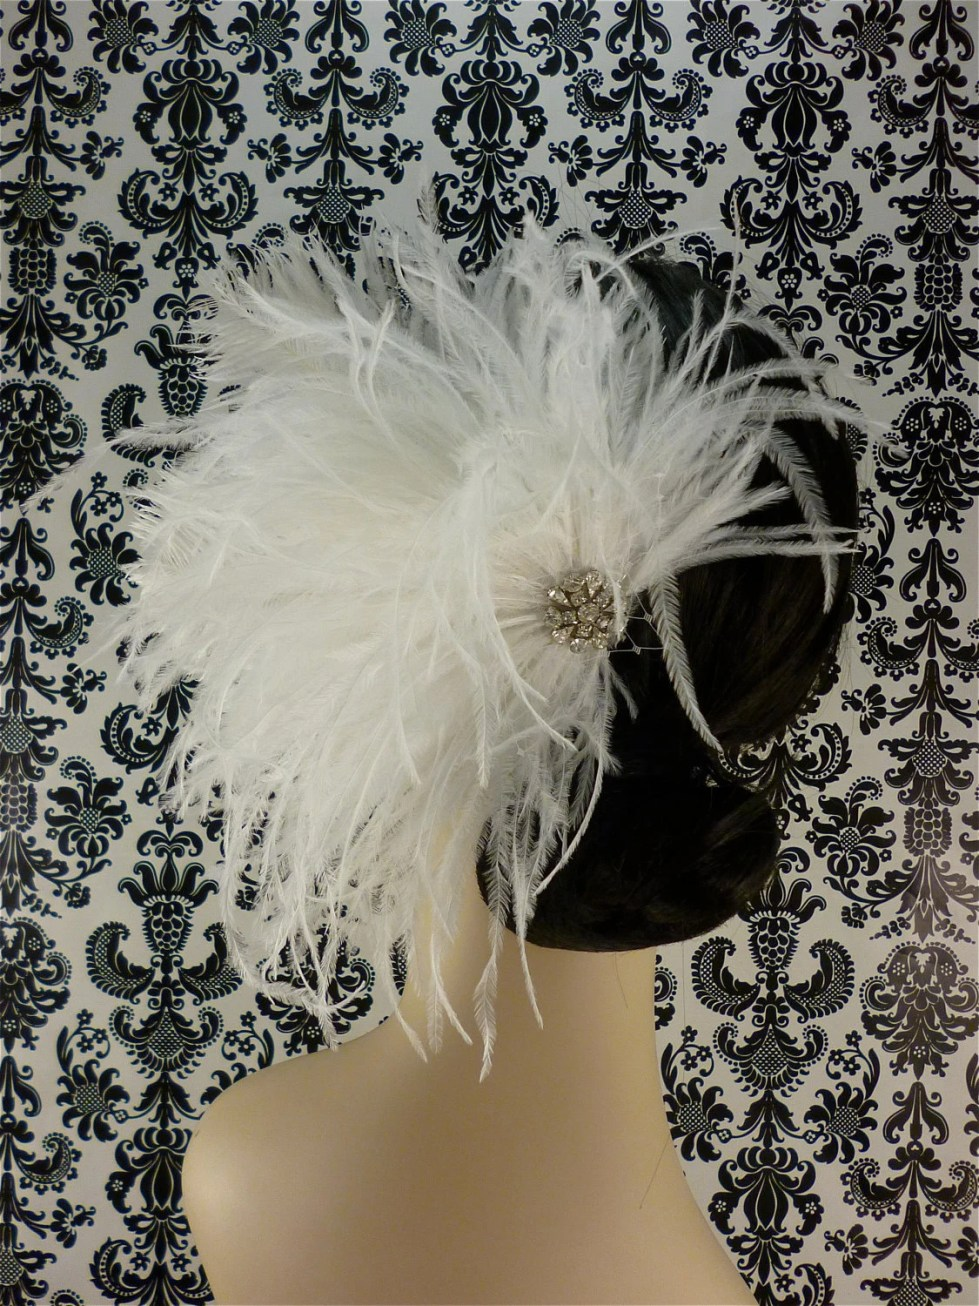 Bridal Feather Fascinator, Bridal Fascinator, Bridal Headpiece, Bridal Hair Accessories, Wedding Hair Accessories, Bridal Veil, Wedding Veil